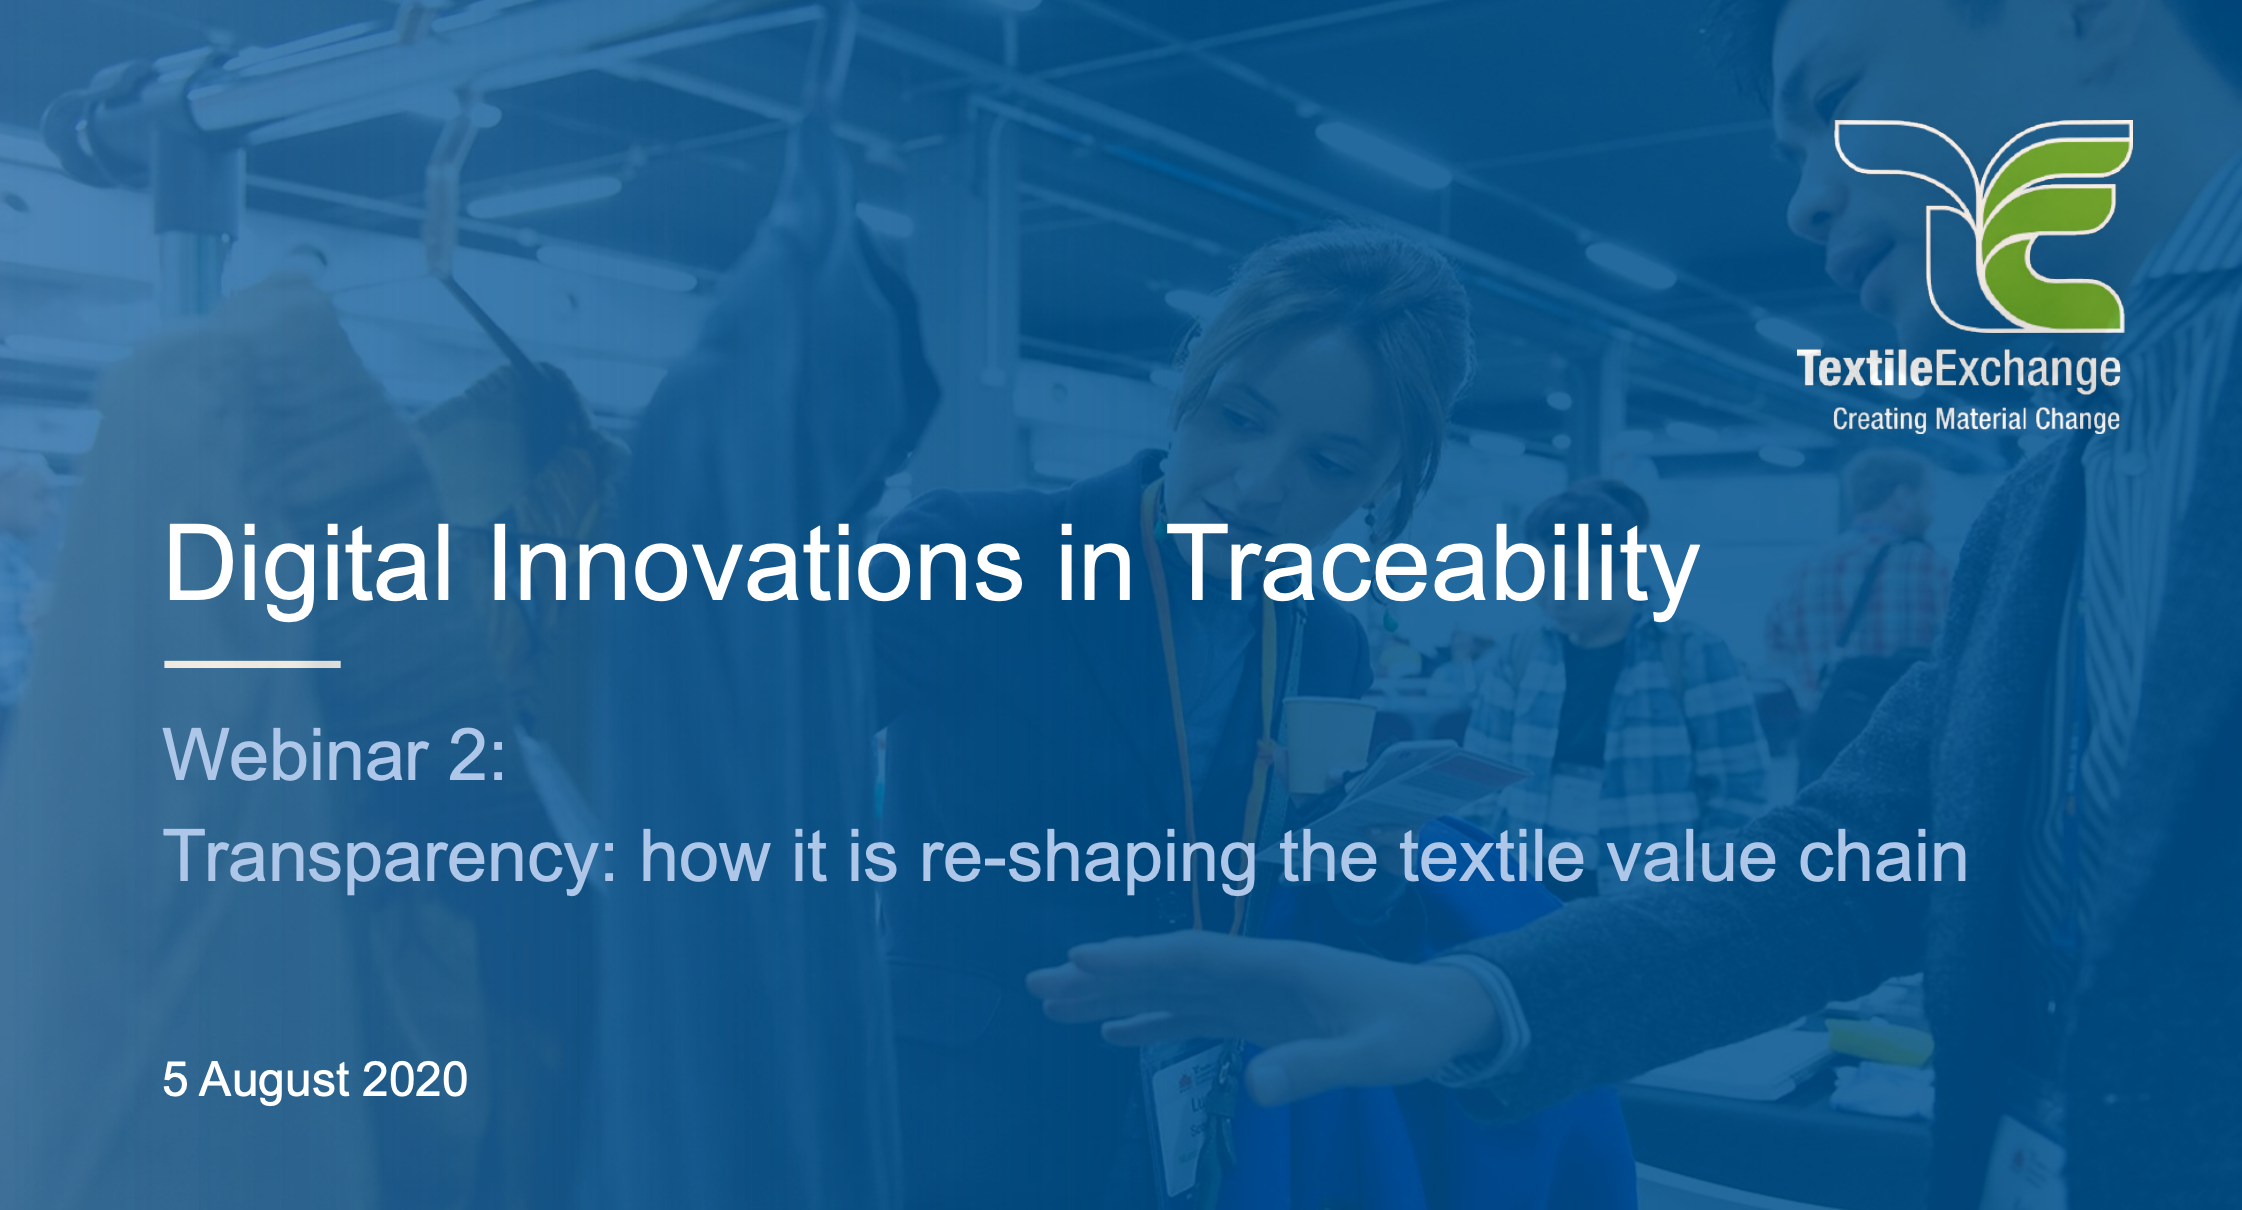 Digital Innovations in Traceability #2